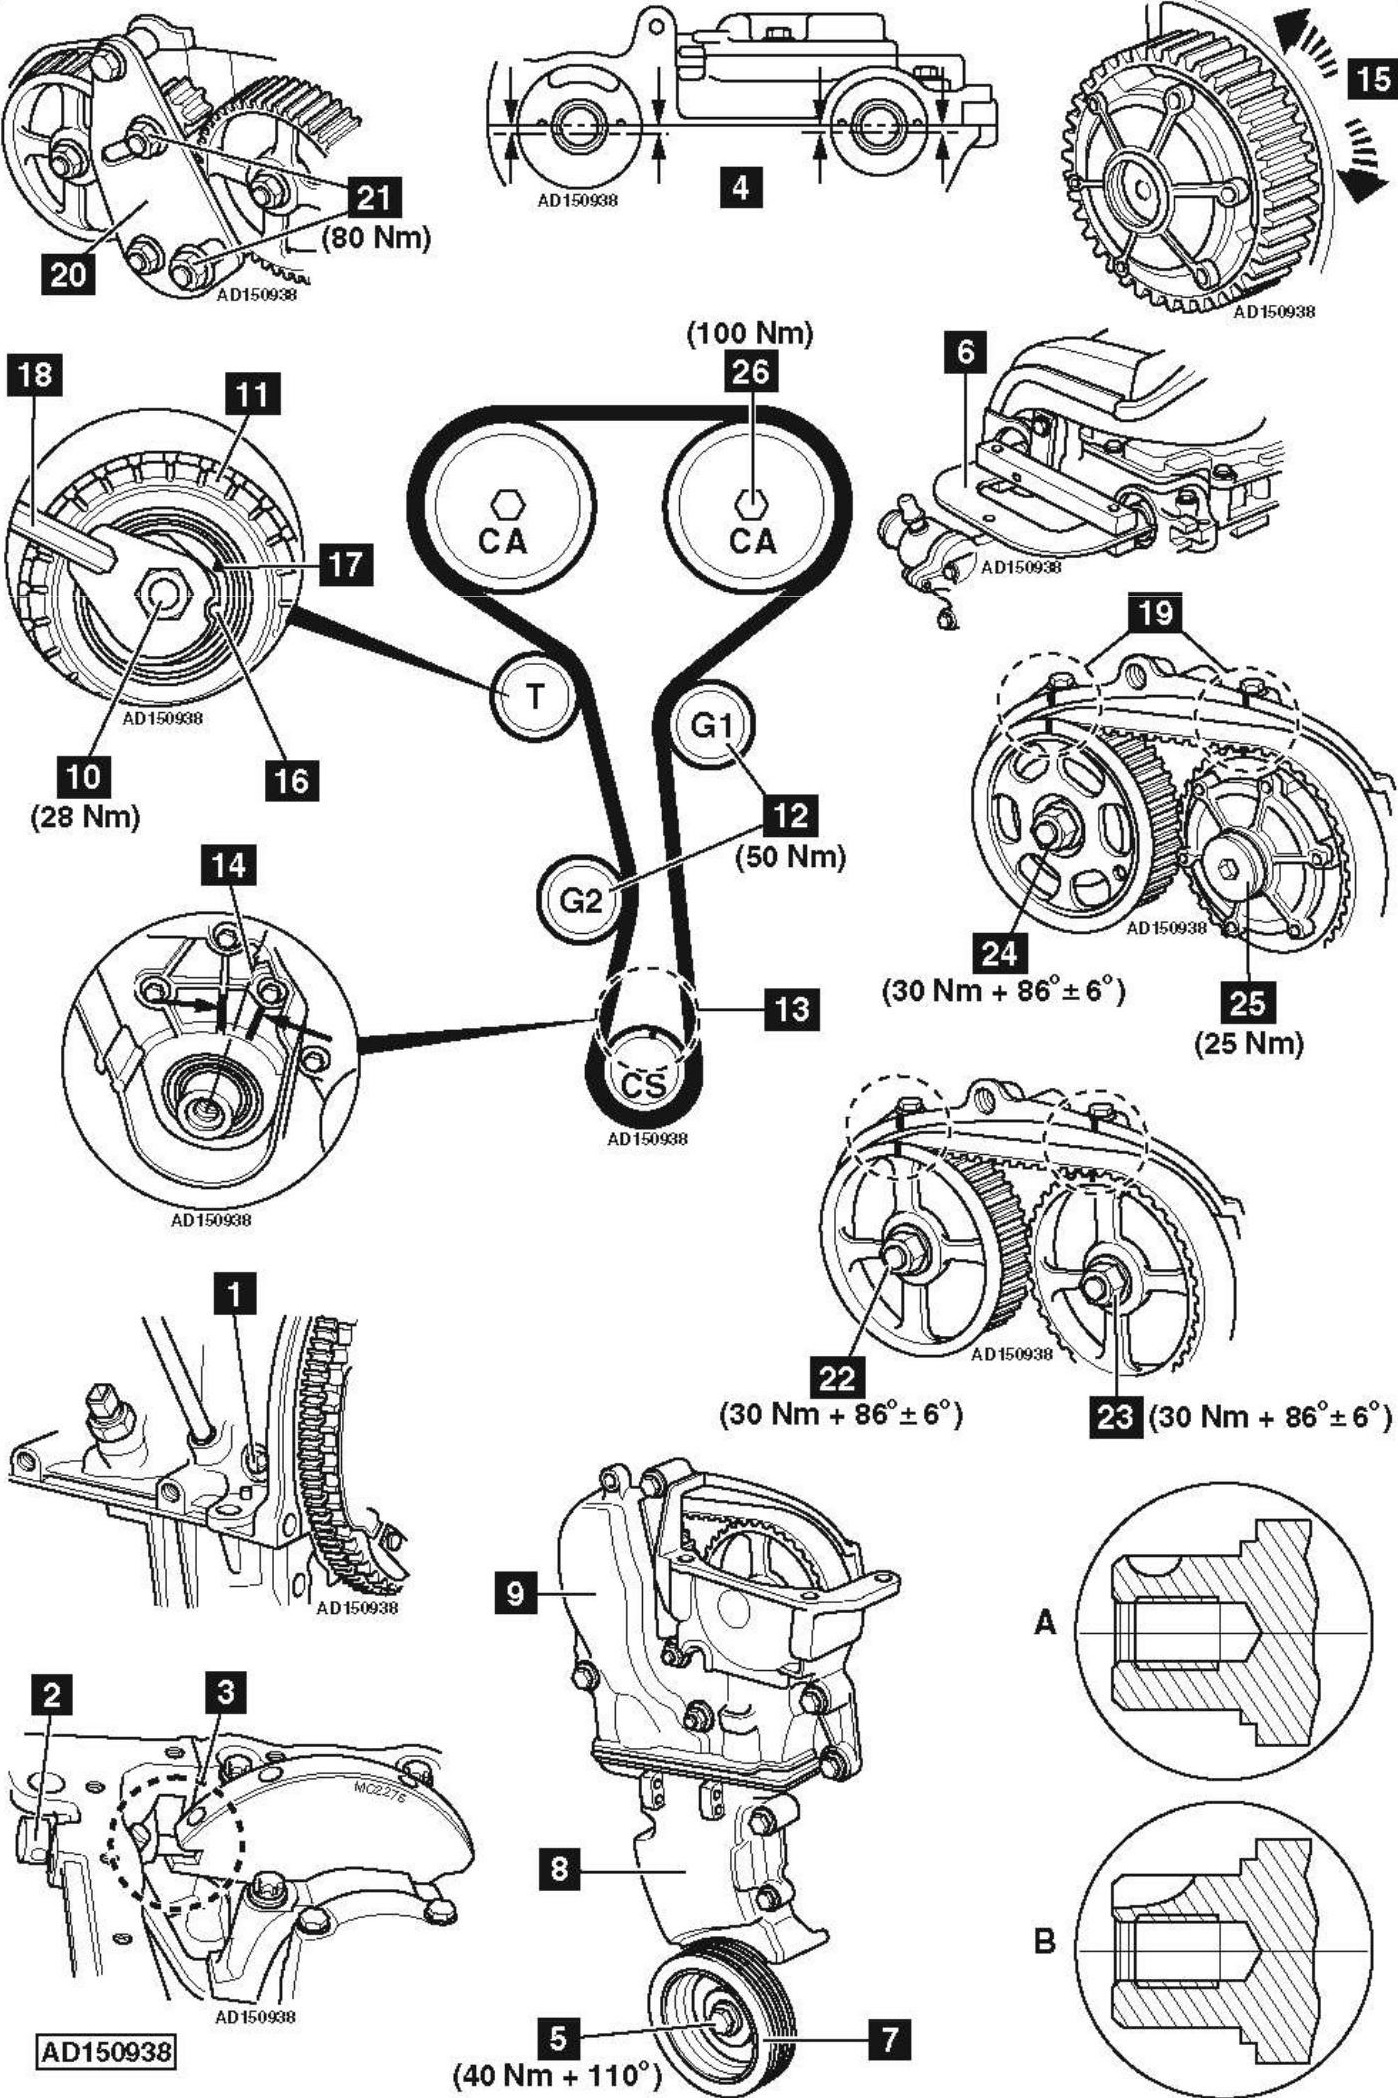 Vw 2 0 L Engine Belt Diagram Wiring Library How To Replace Timing On Renault Scenic 20 16v 2003